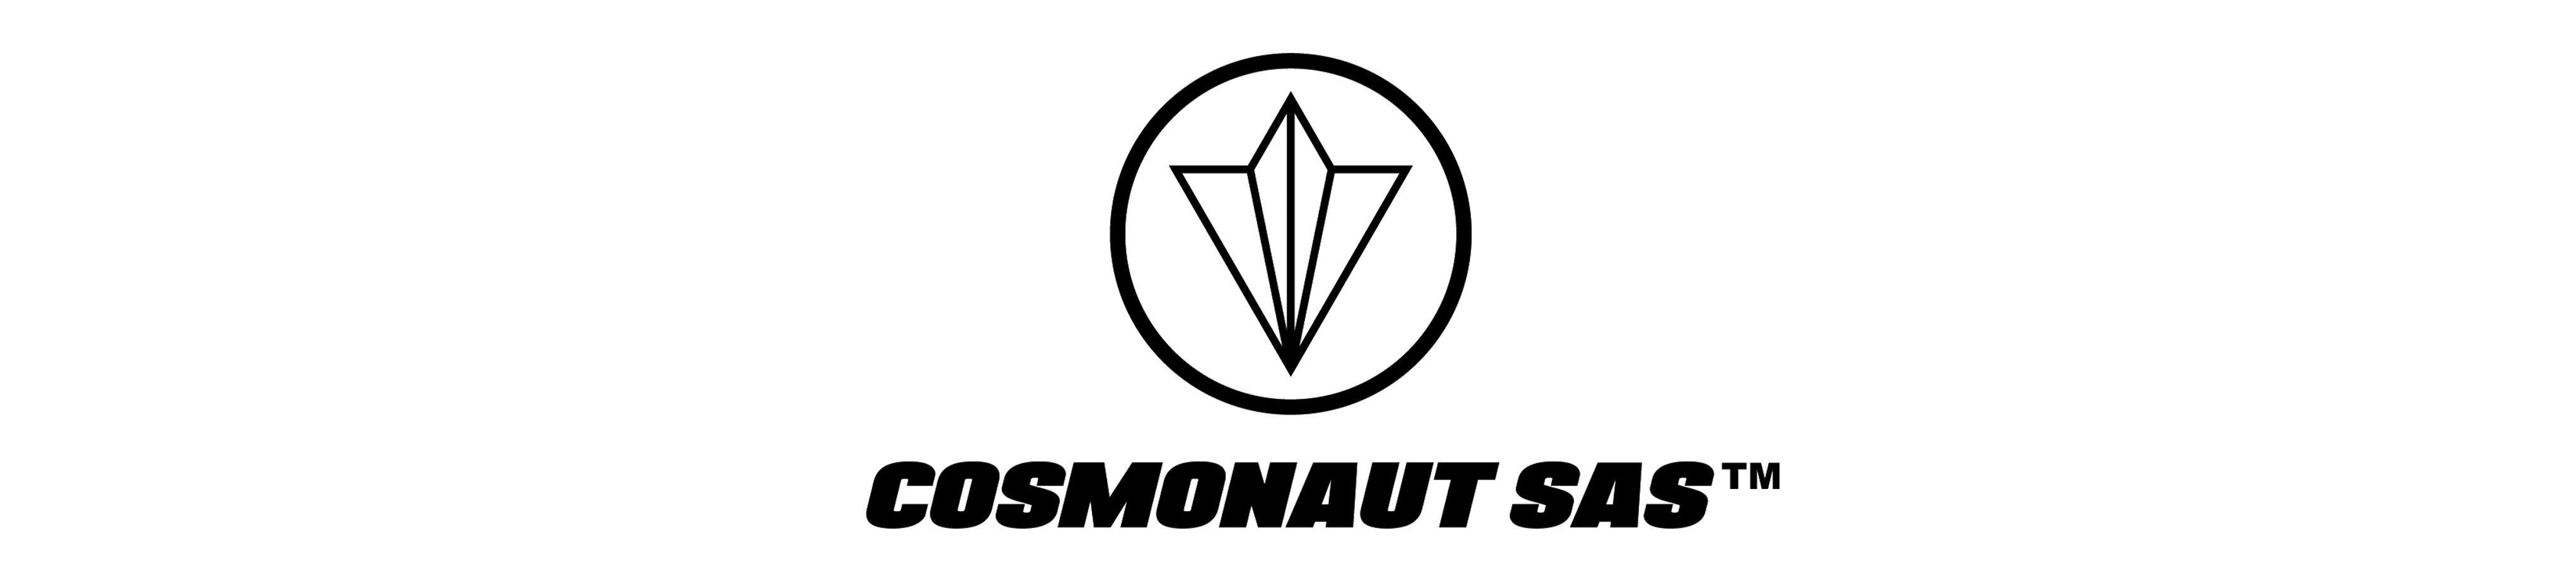 COSMONAUT SAS CLOTHING